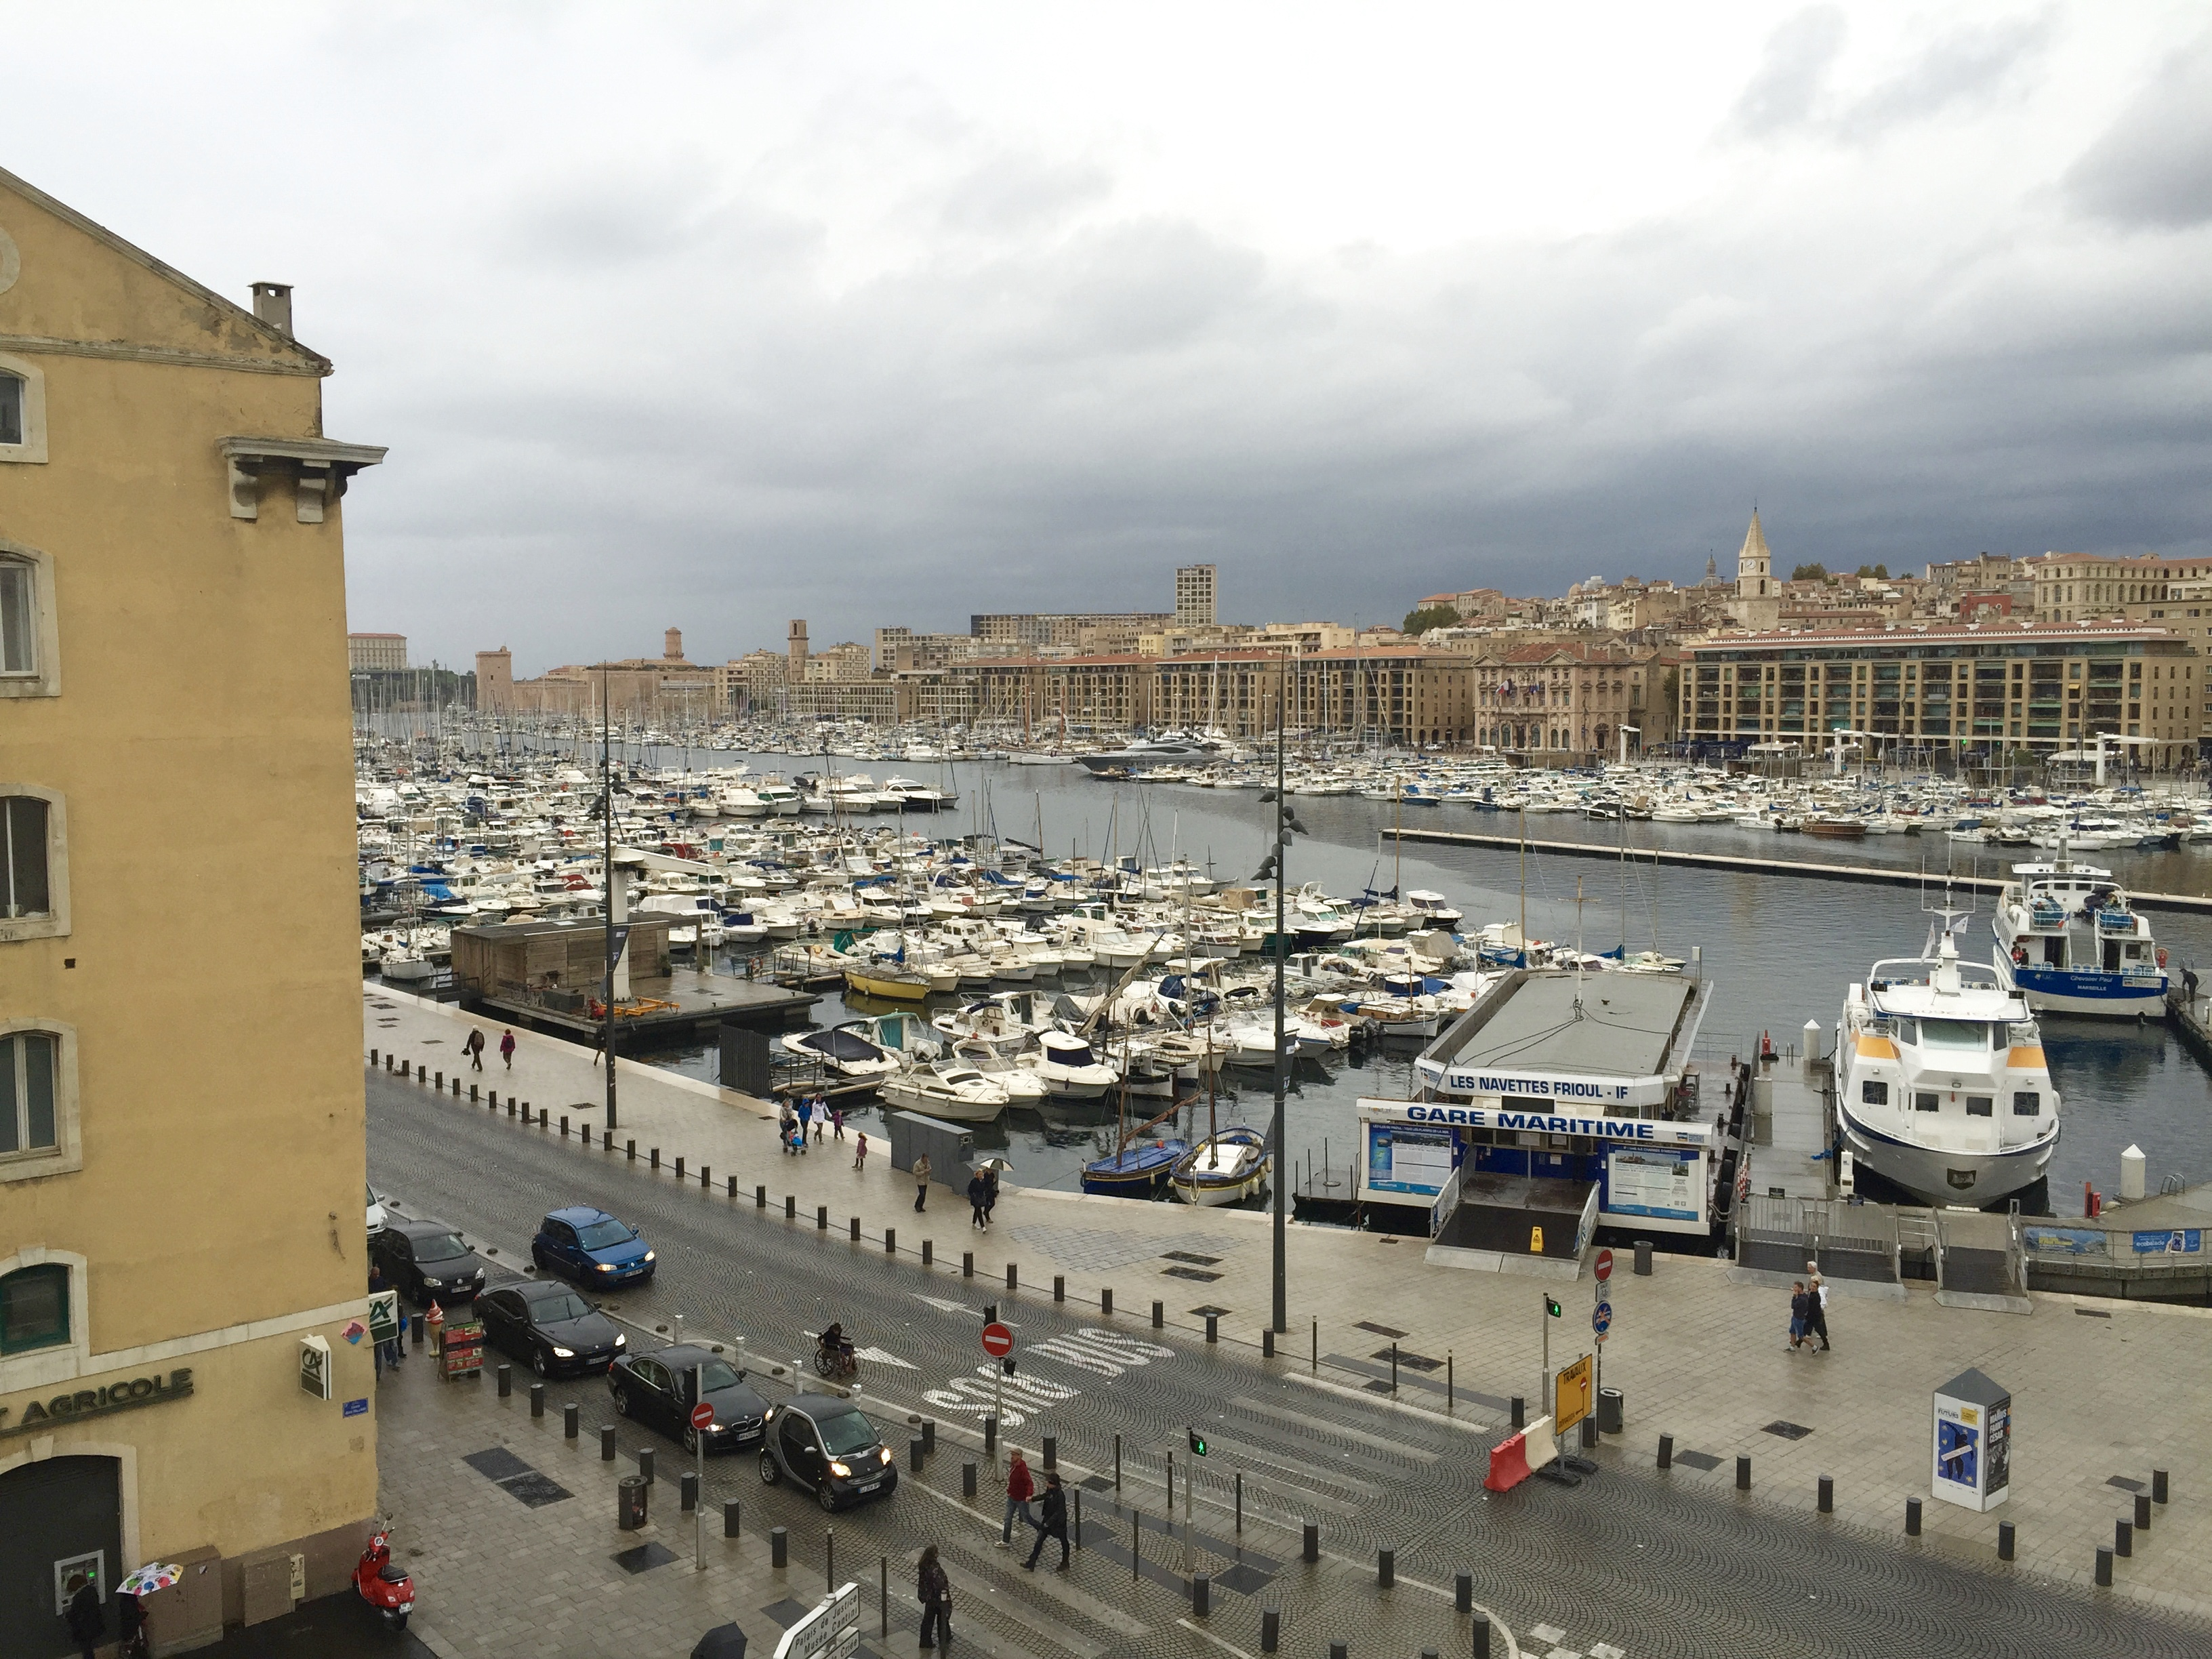 The view from our Airbnb of Vieux Port in Marseille, France